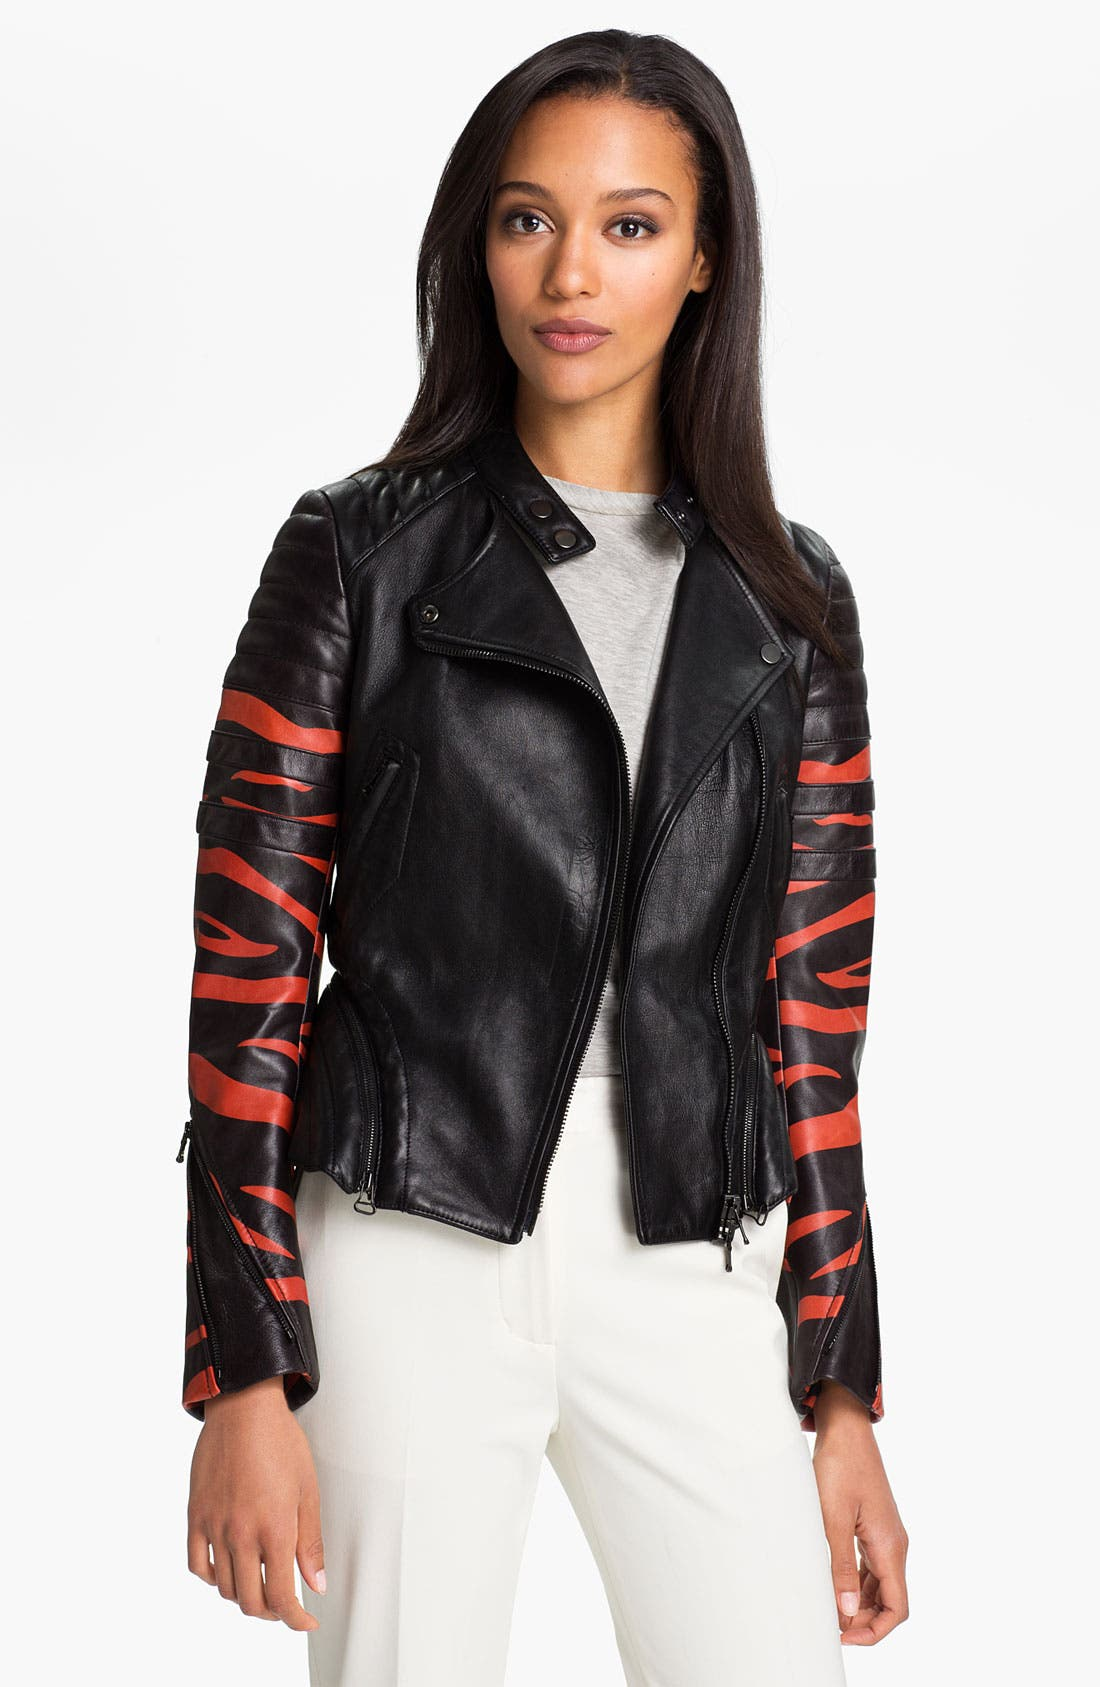 Main Image - 3.1 Phillip Lim Peplum Motorcycle Jacket